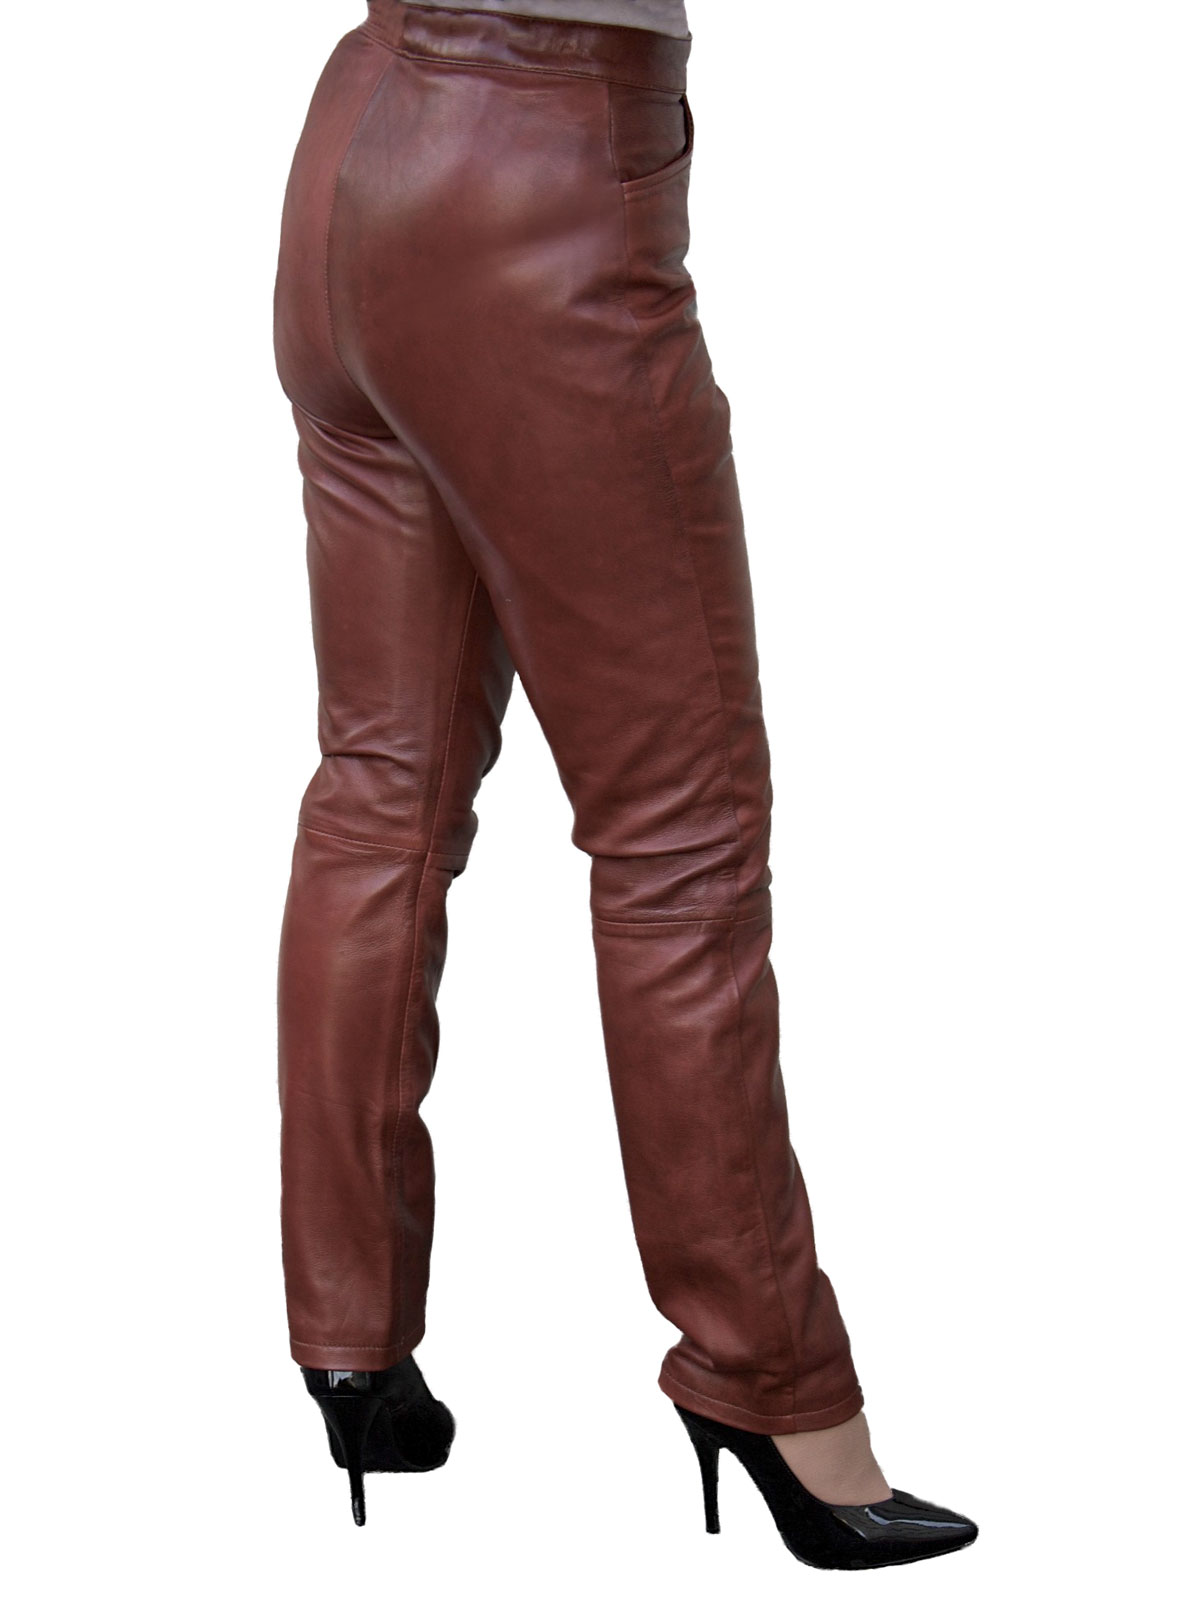 Burgundy Trousers Brown Shoes